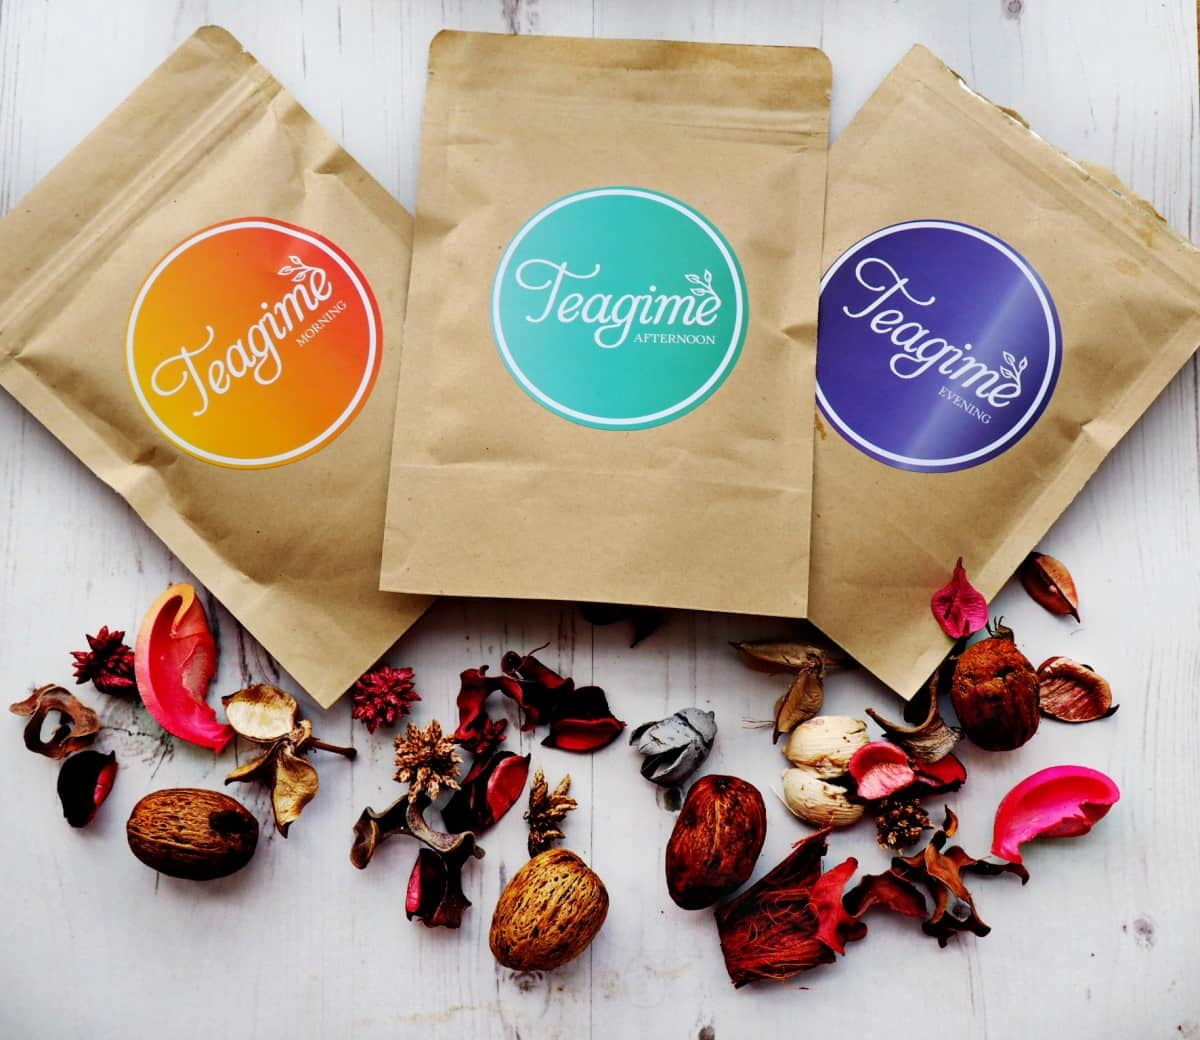 This teagime review talks about teagime natural subscription box.